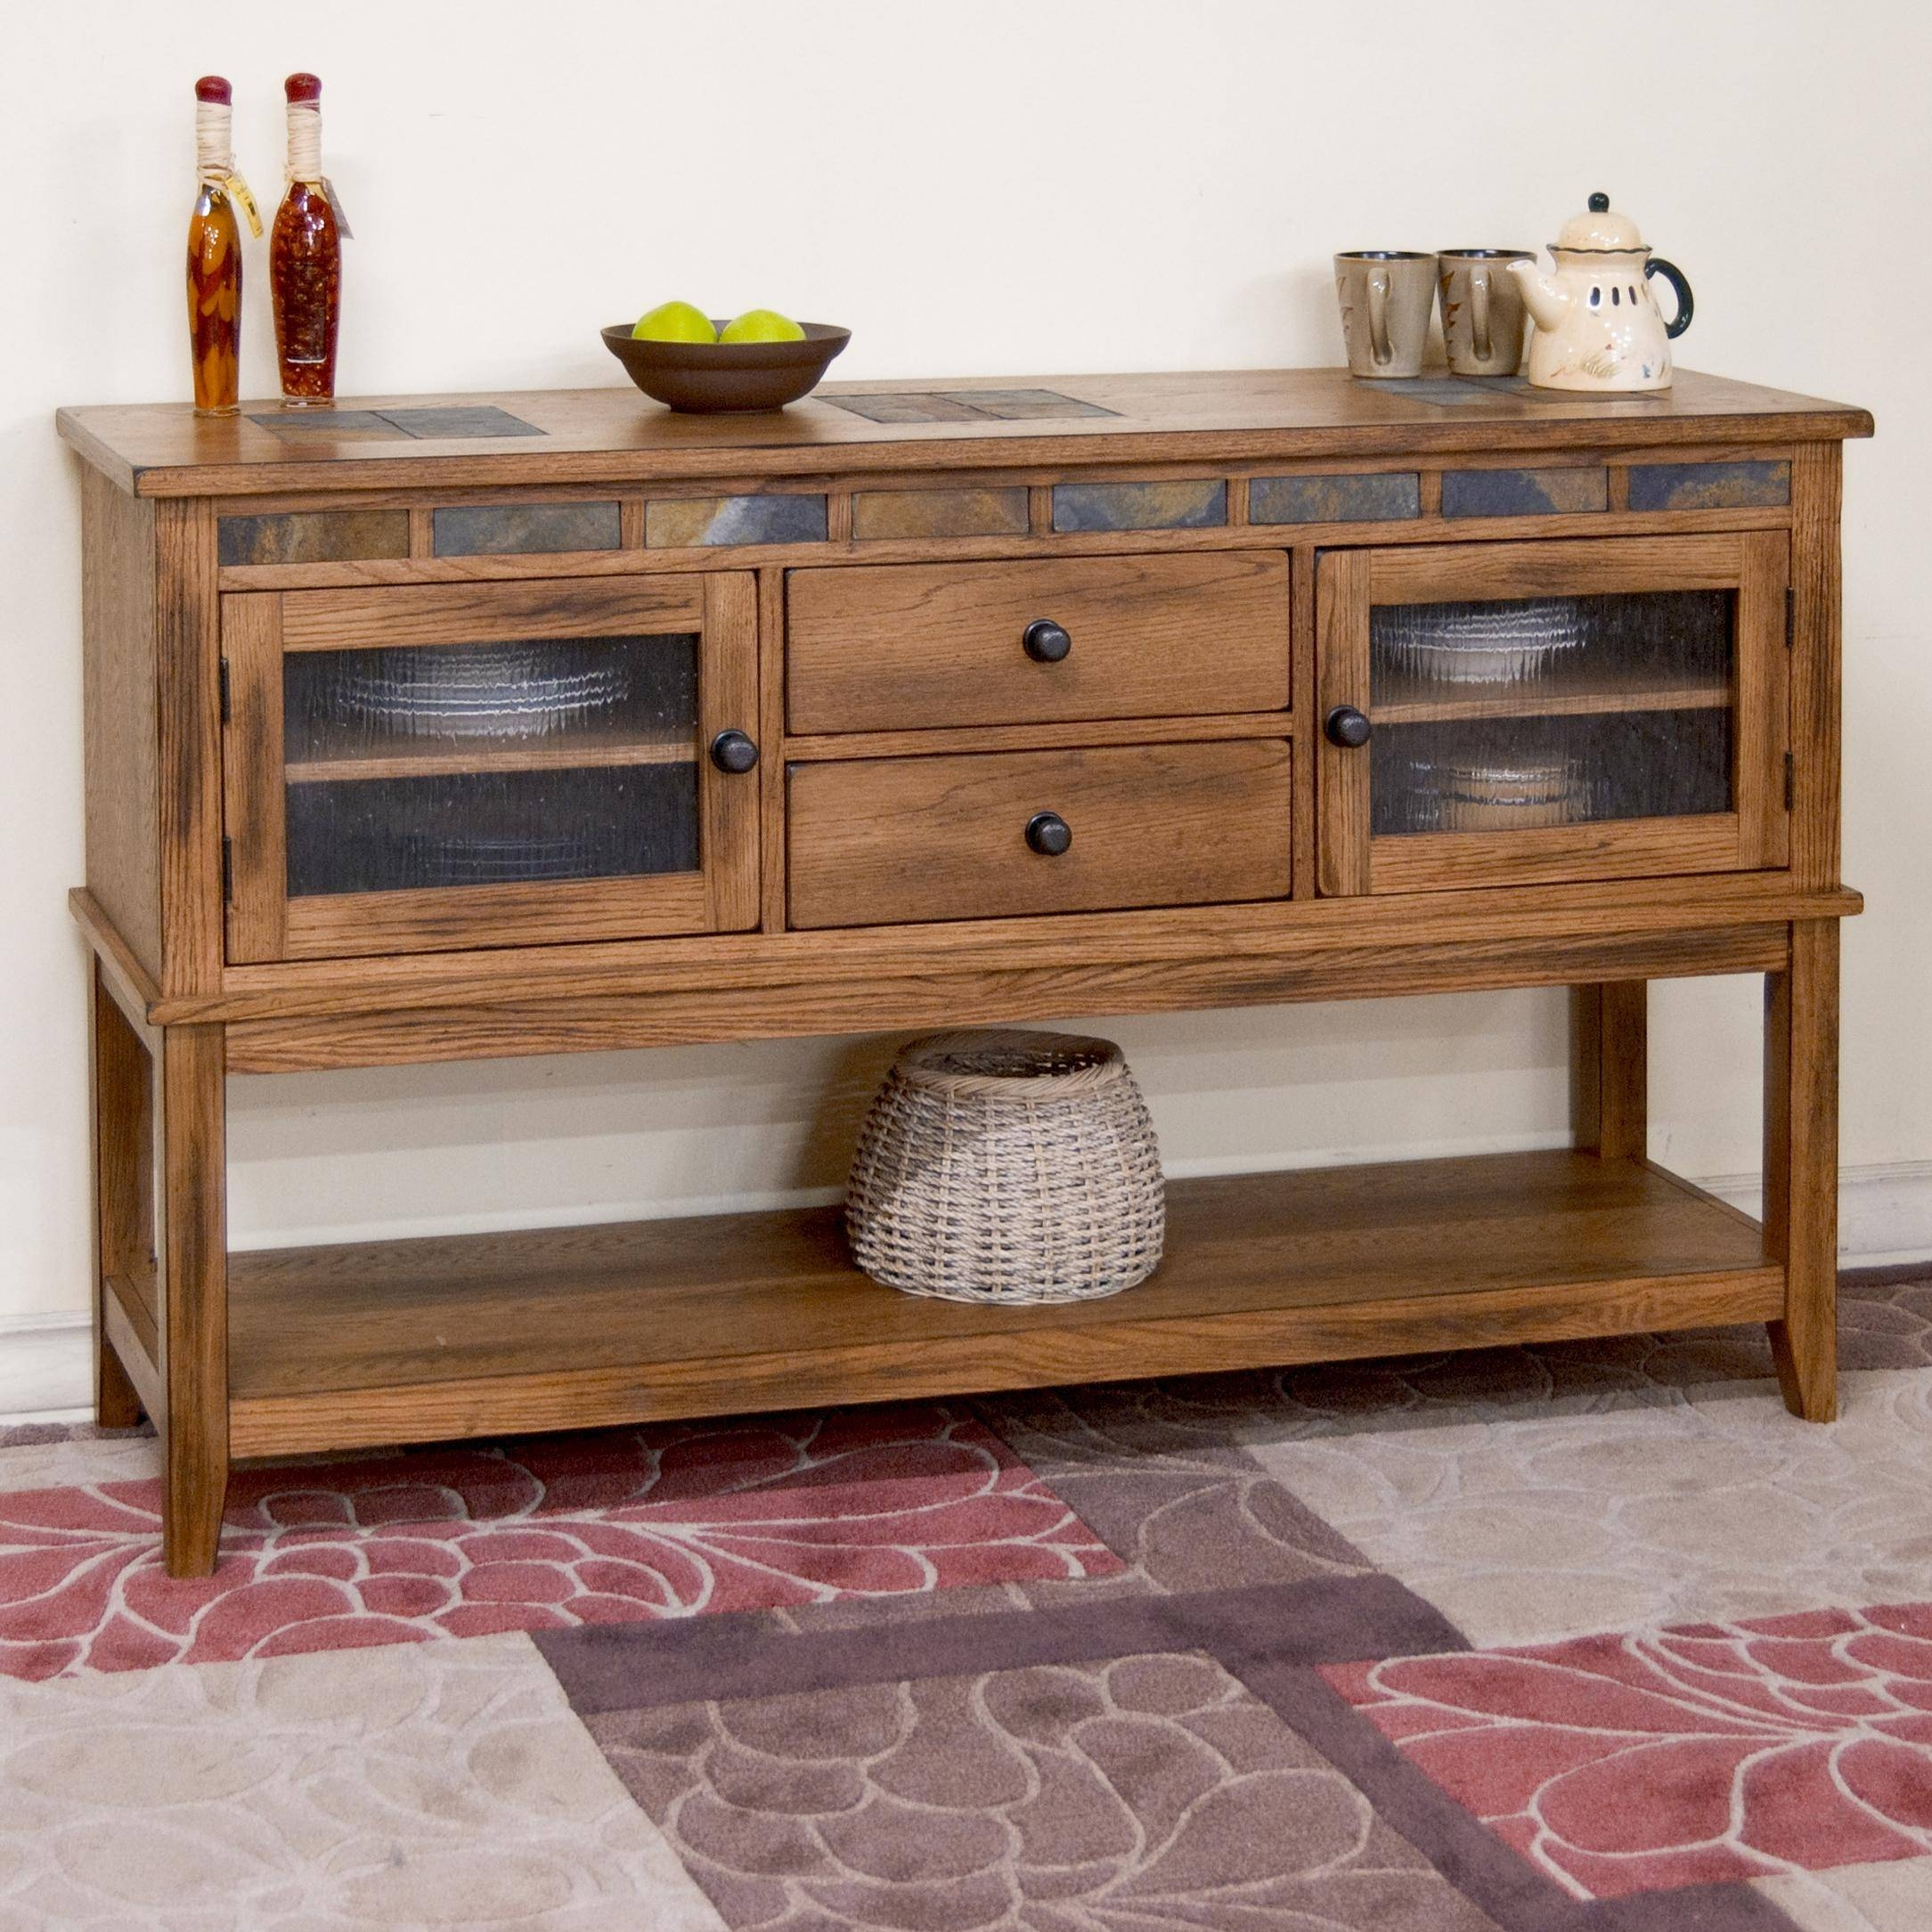 Stunning Rustic Dining Room Sideboard Contemporary - 3D House for Rustic Sideboards (Image 29 of 30)